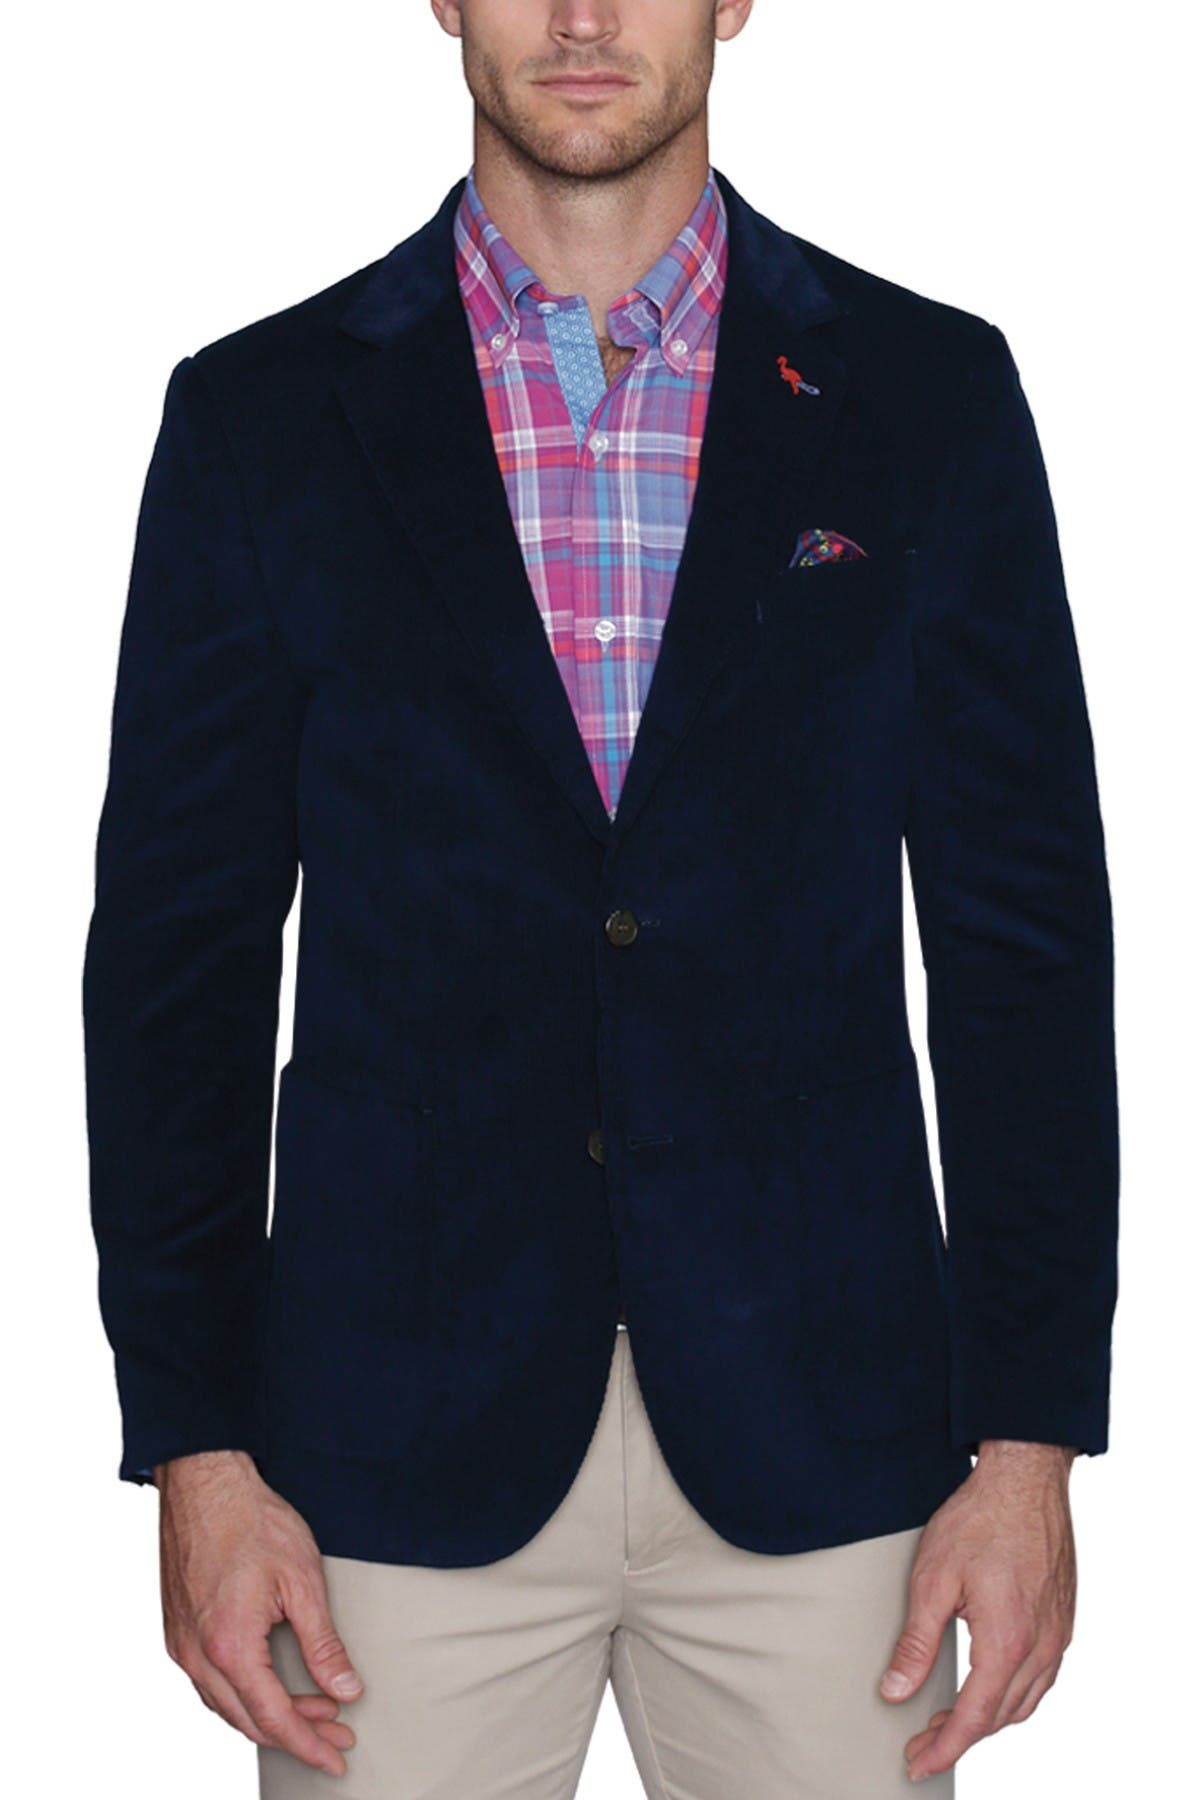 Image of TailorByrd Classic Solid Corduroy Two Button Notch Lapel Modern Fit Sport Coat